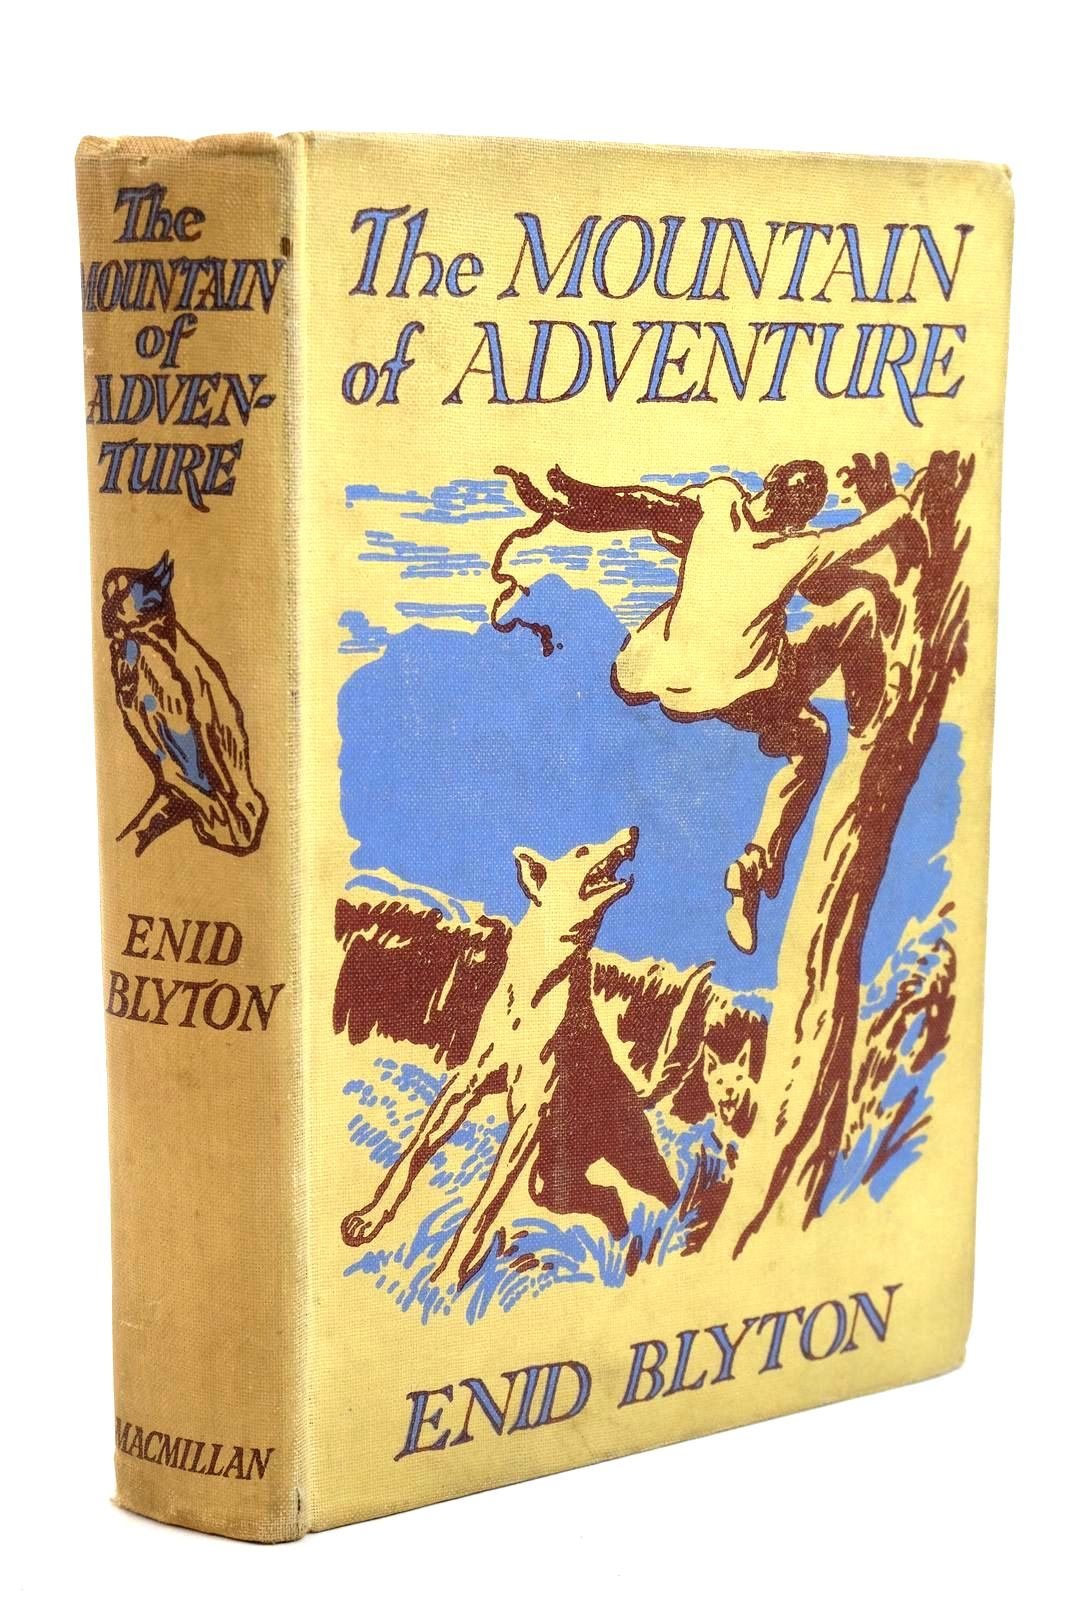 Photo of THE MOUNTAIN OF ADVENTURE written by Blyton, Enid illustrated by Tresilian, Stuart published by Macmillan & Co. Ltd. (STOCK CODE: 1320740)  for sale by Stella & Rose's Books